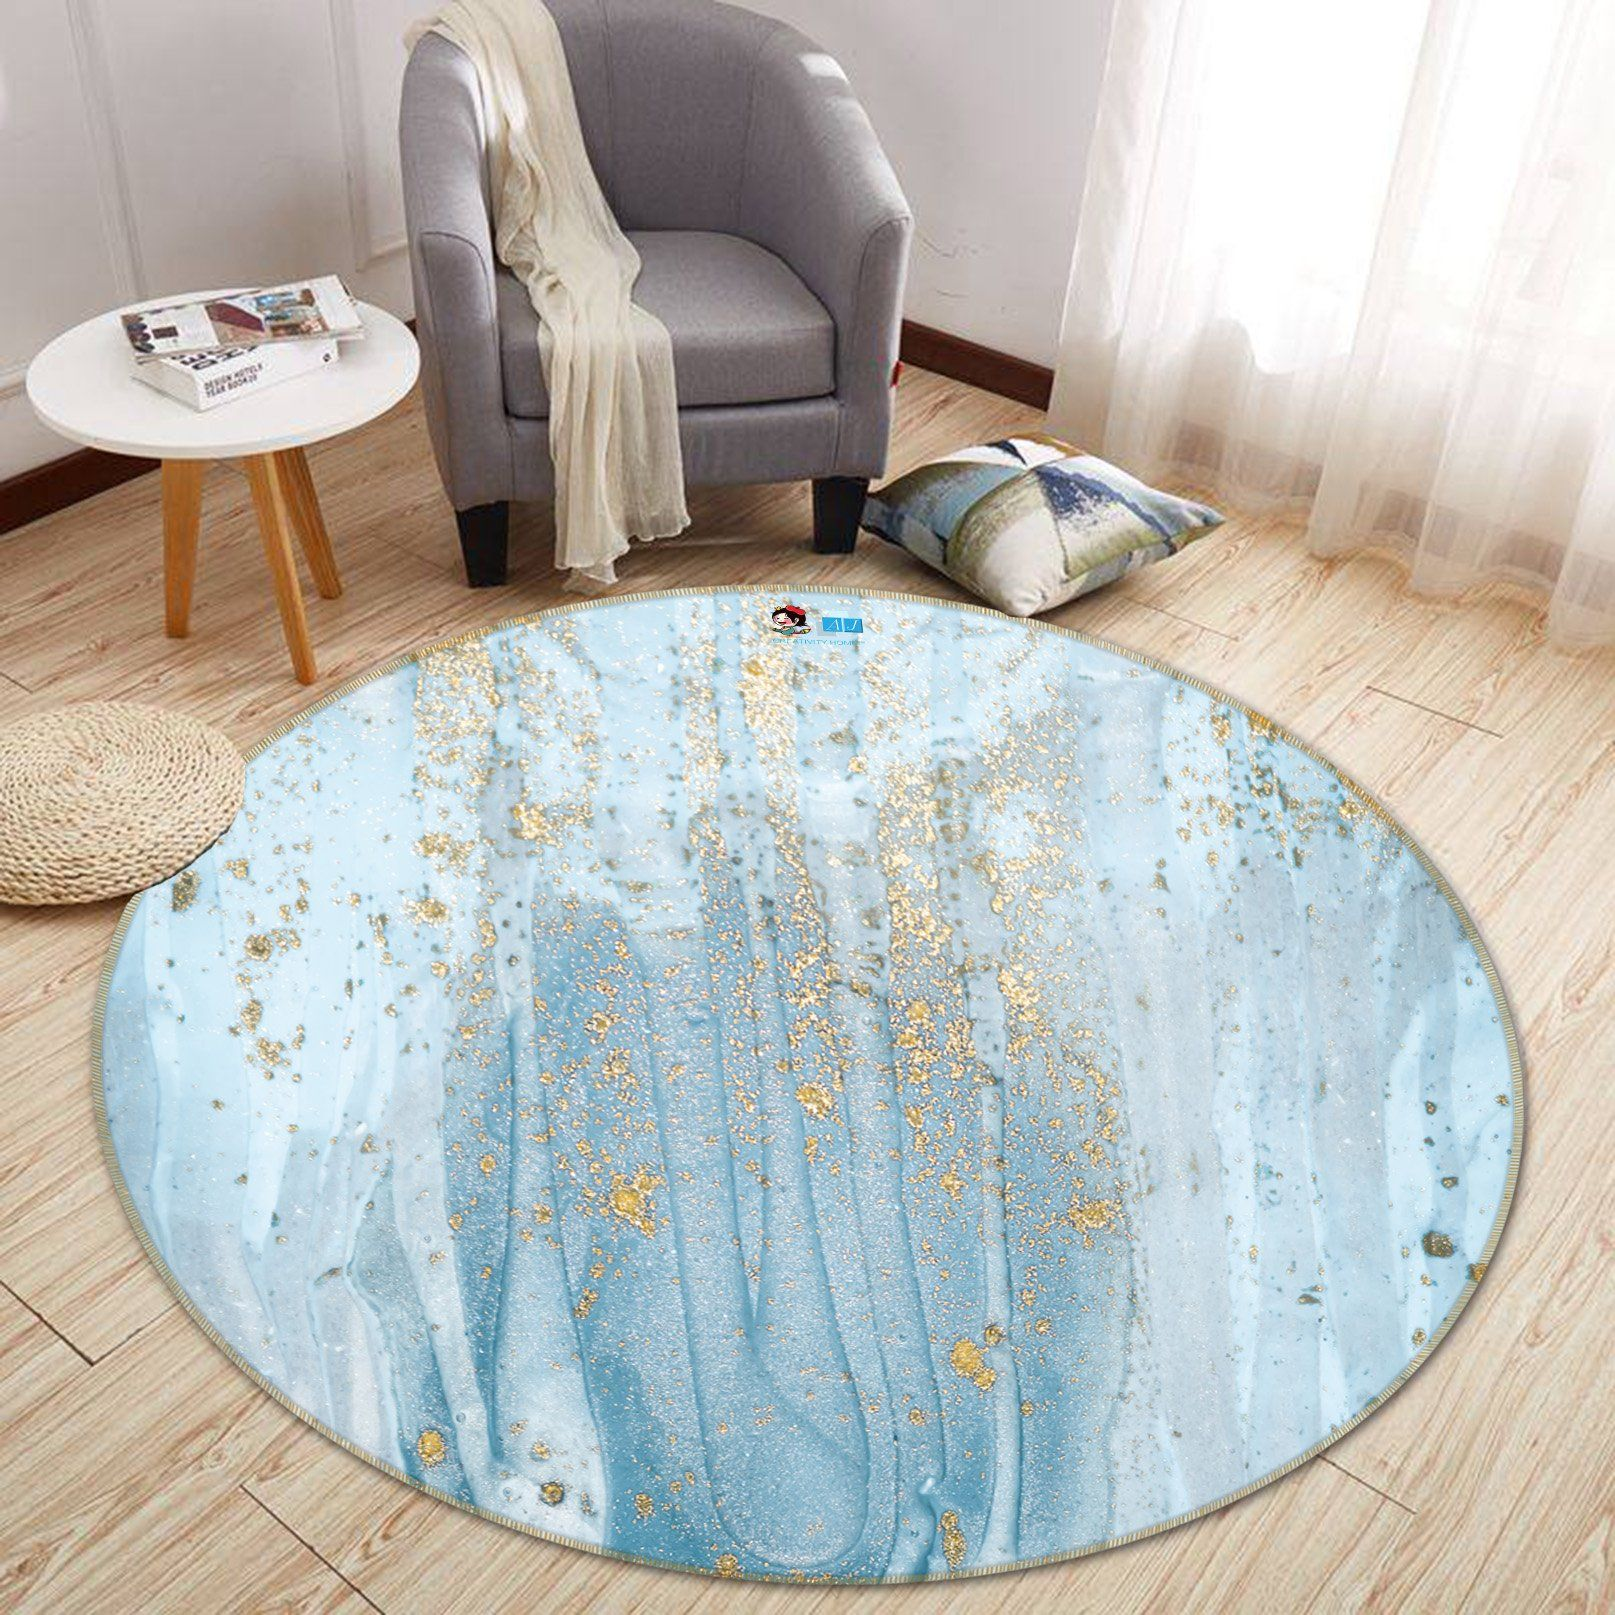 3D Apply Light Blue 146 Round Non Slip Rug Mat Mat AJ Creativity Home